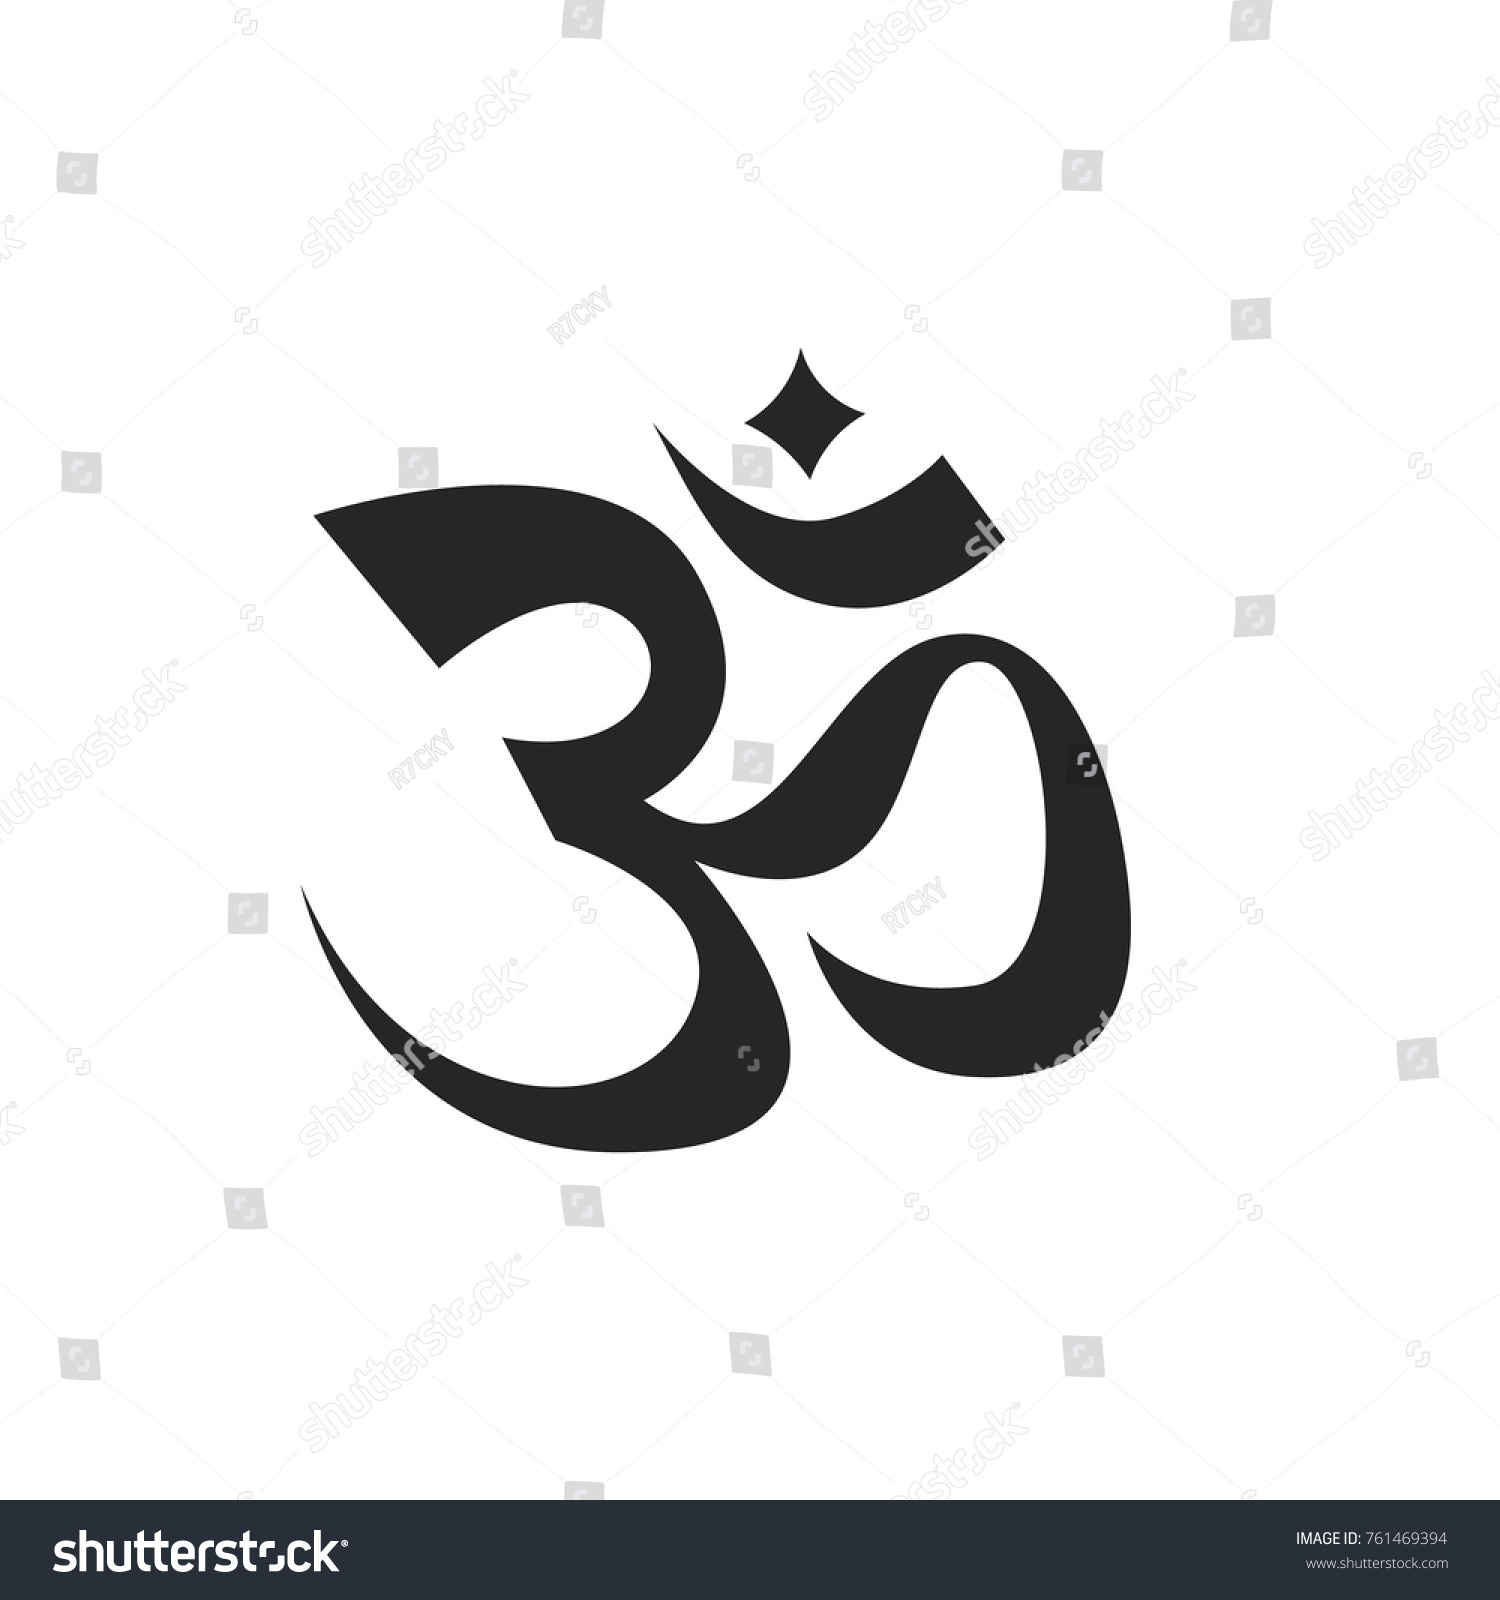 Picture Of Karma Symbol Gallery Meaning Of This Symbol